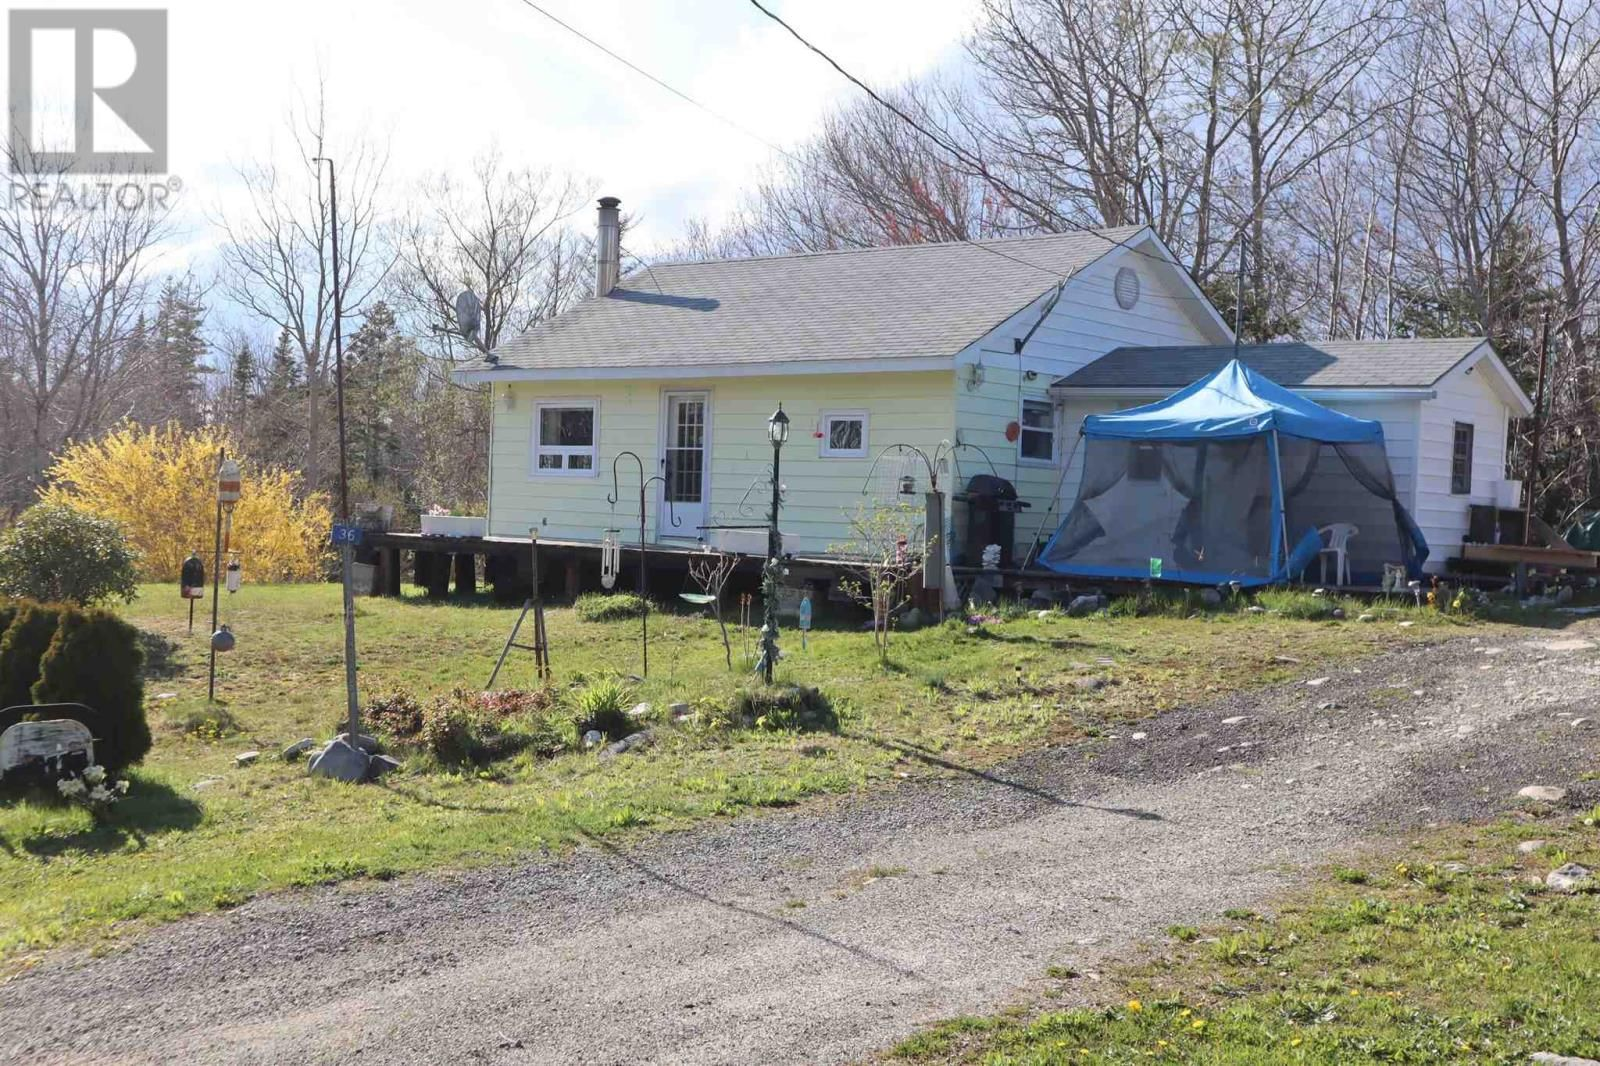 Main Photo: 36 Goose View Drive in East Port L'Hebert: House for sale : MLS®# 202112773